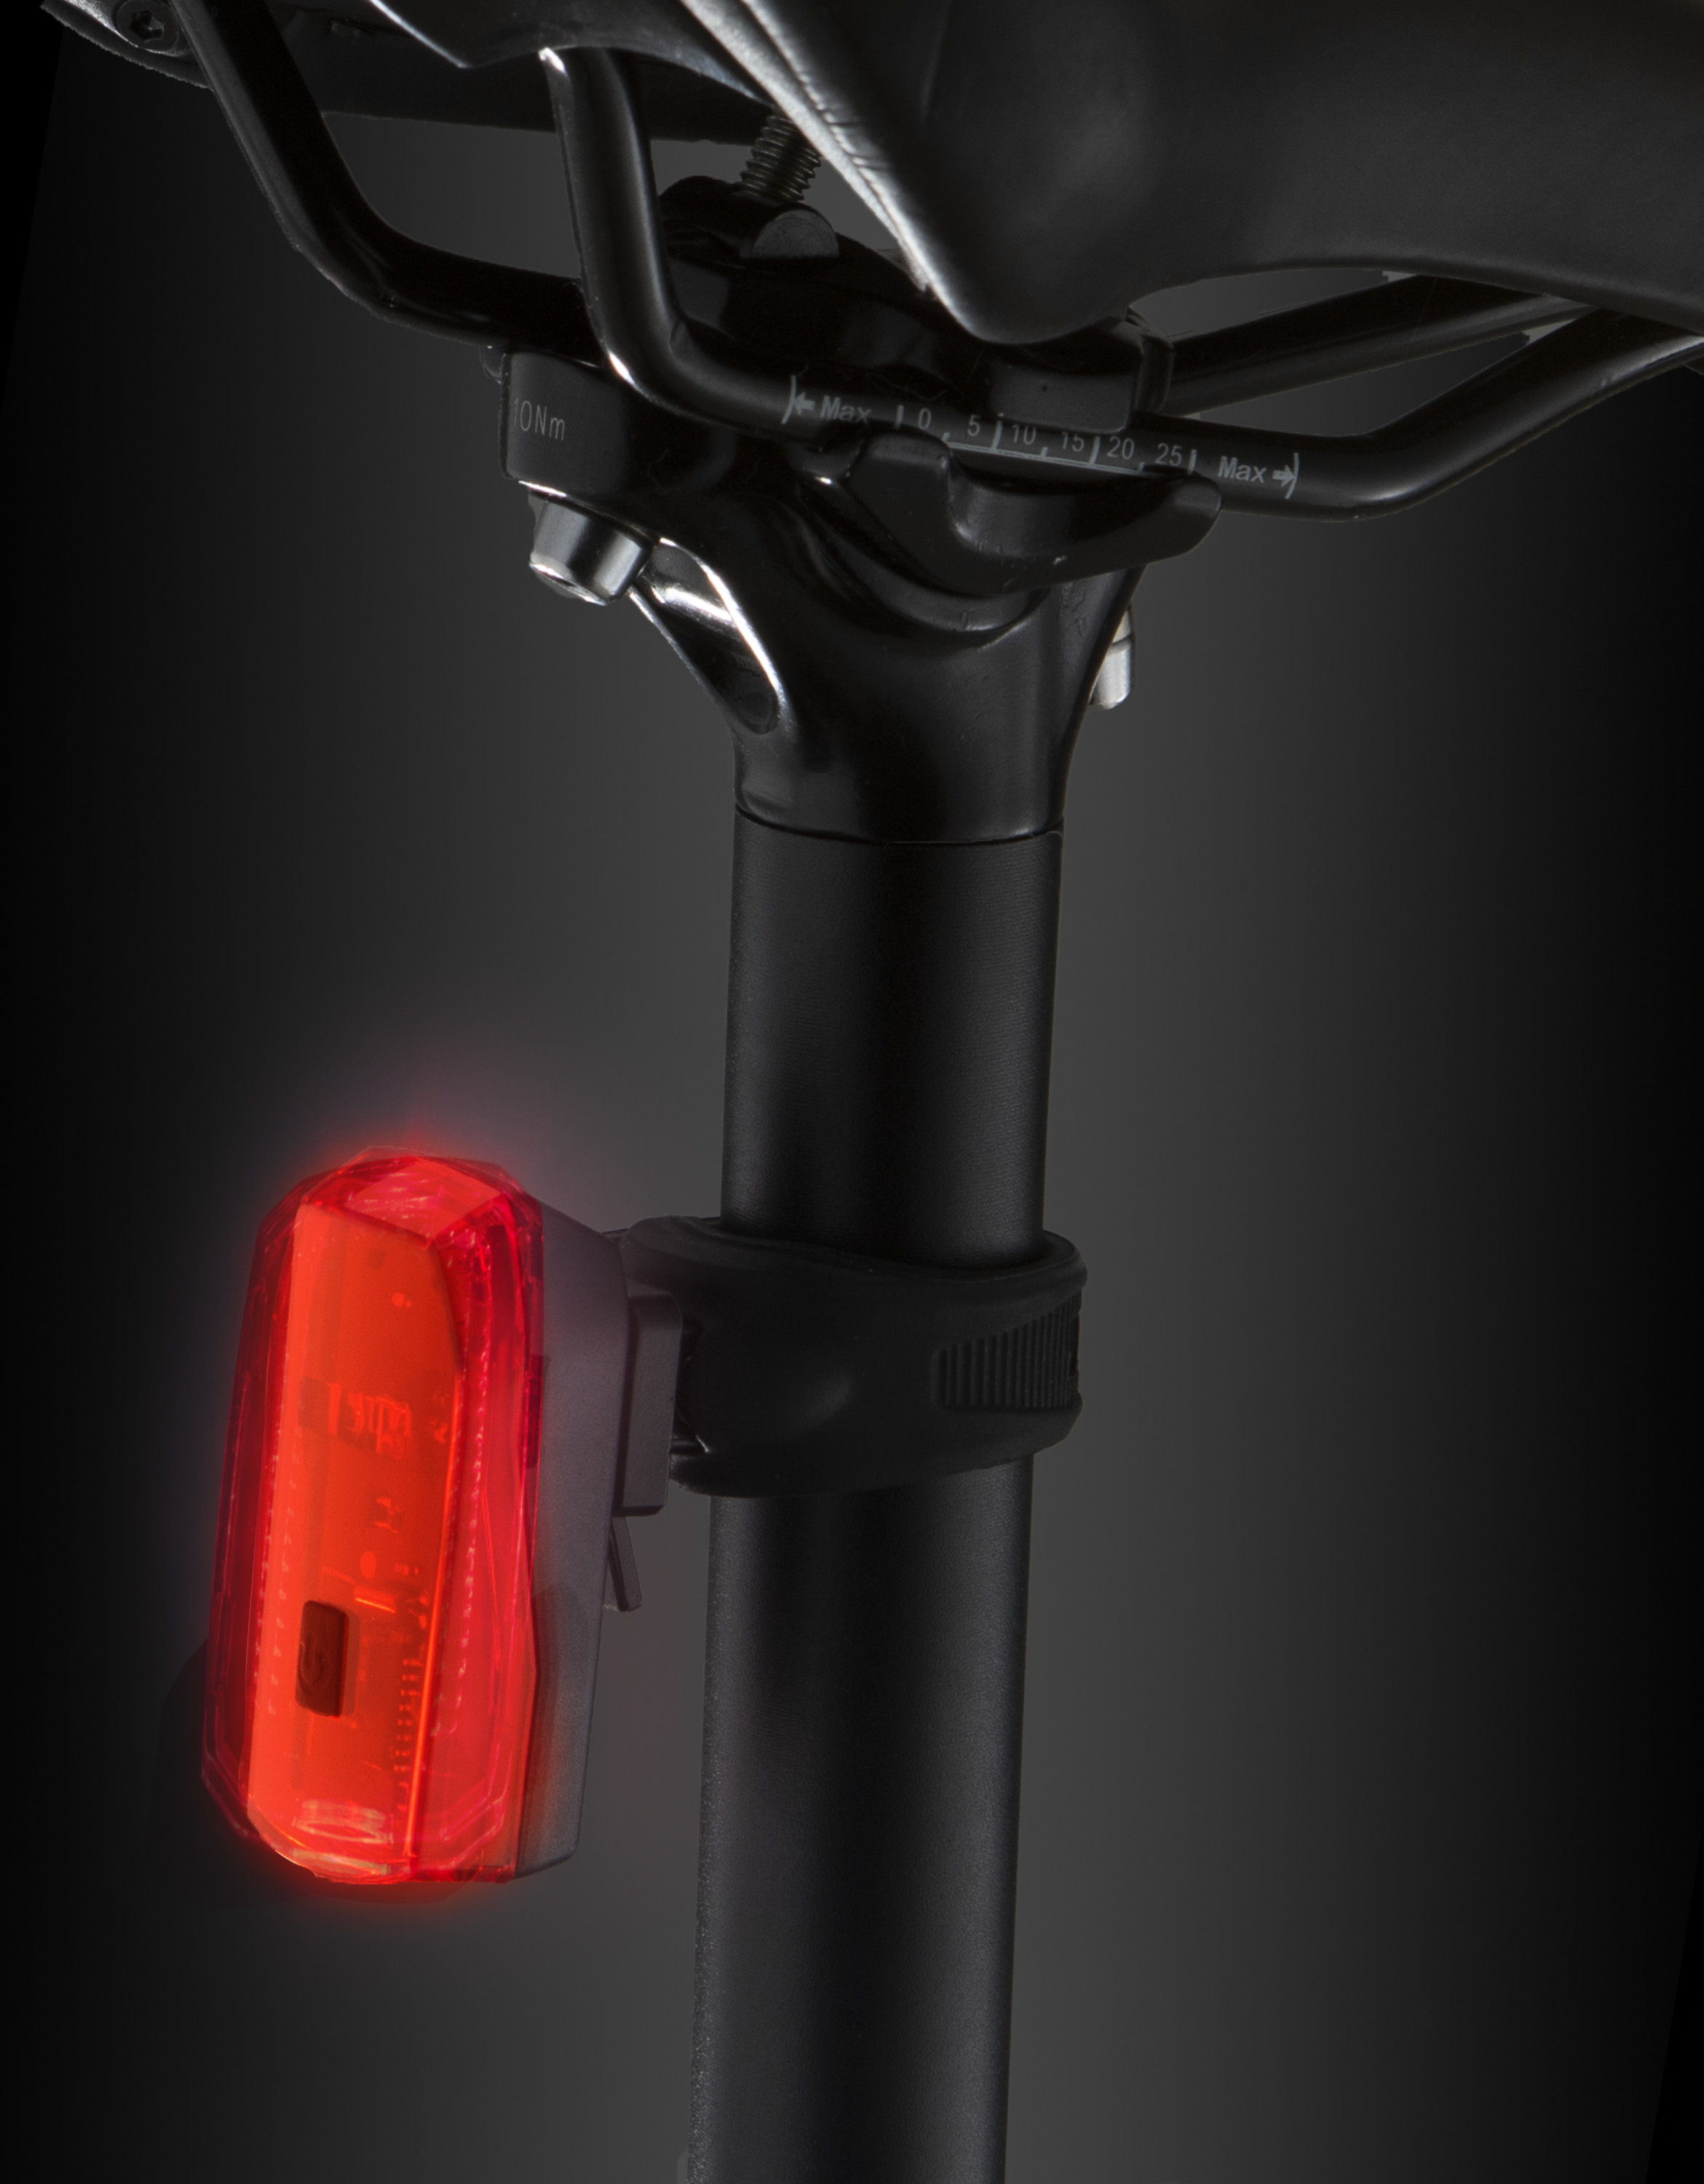 Details about  /SCHWINN Bicycle Light Set Taillight /& Headlight One Button Control 200 Sync